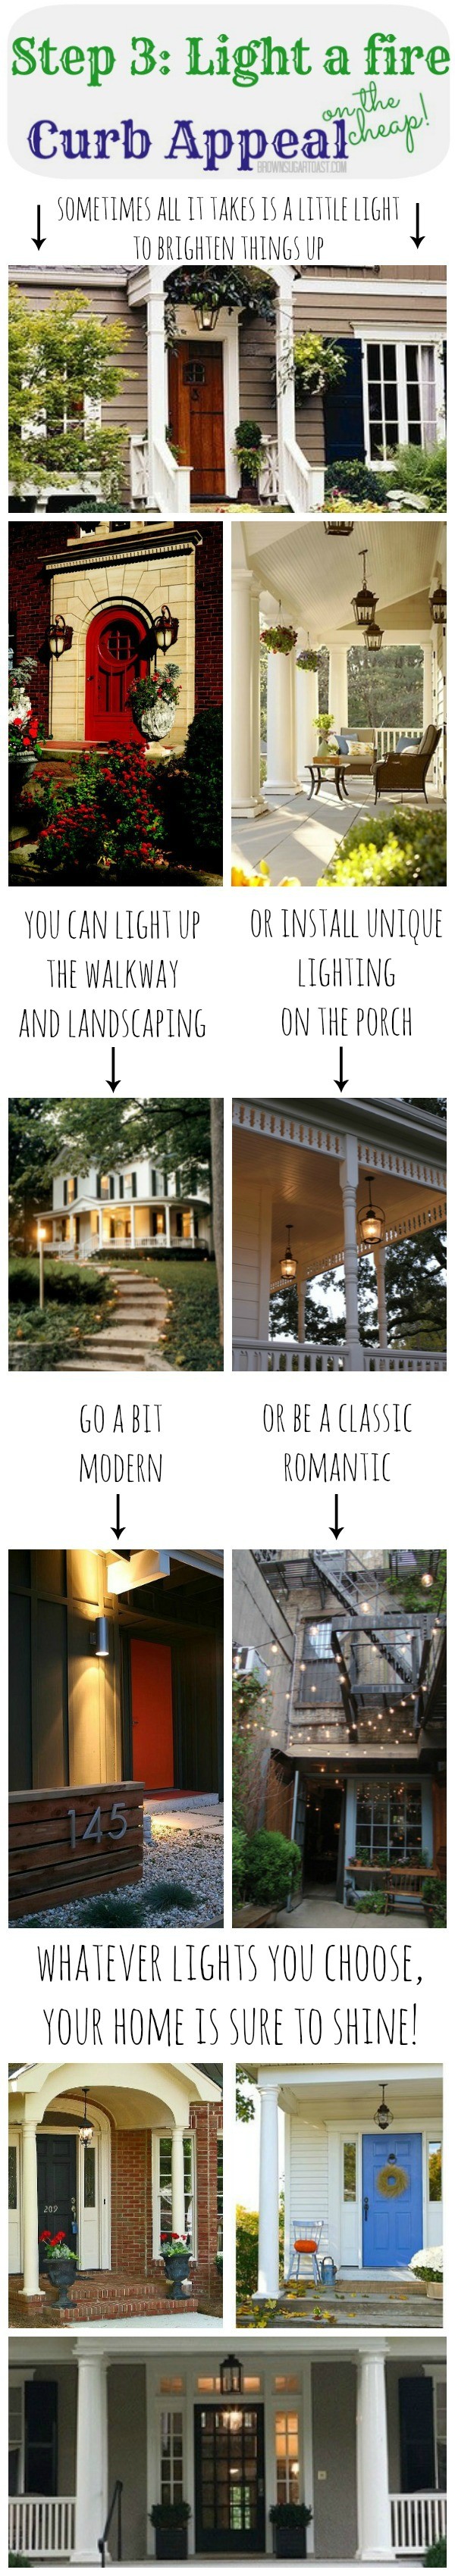 step3 curb appeal